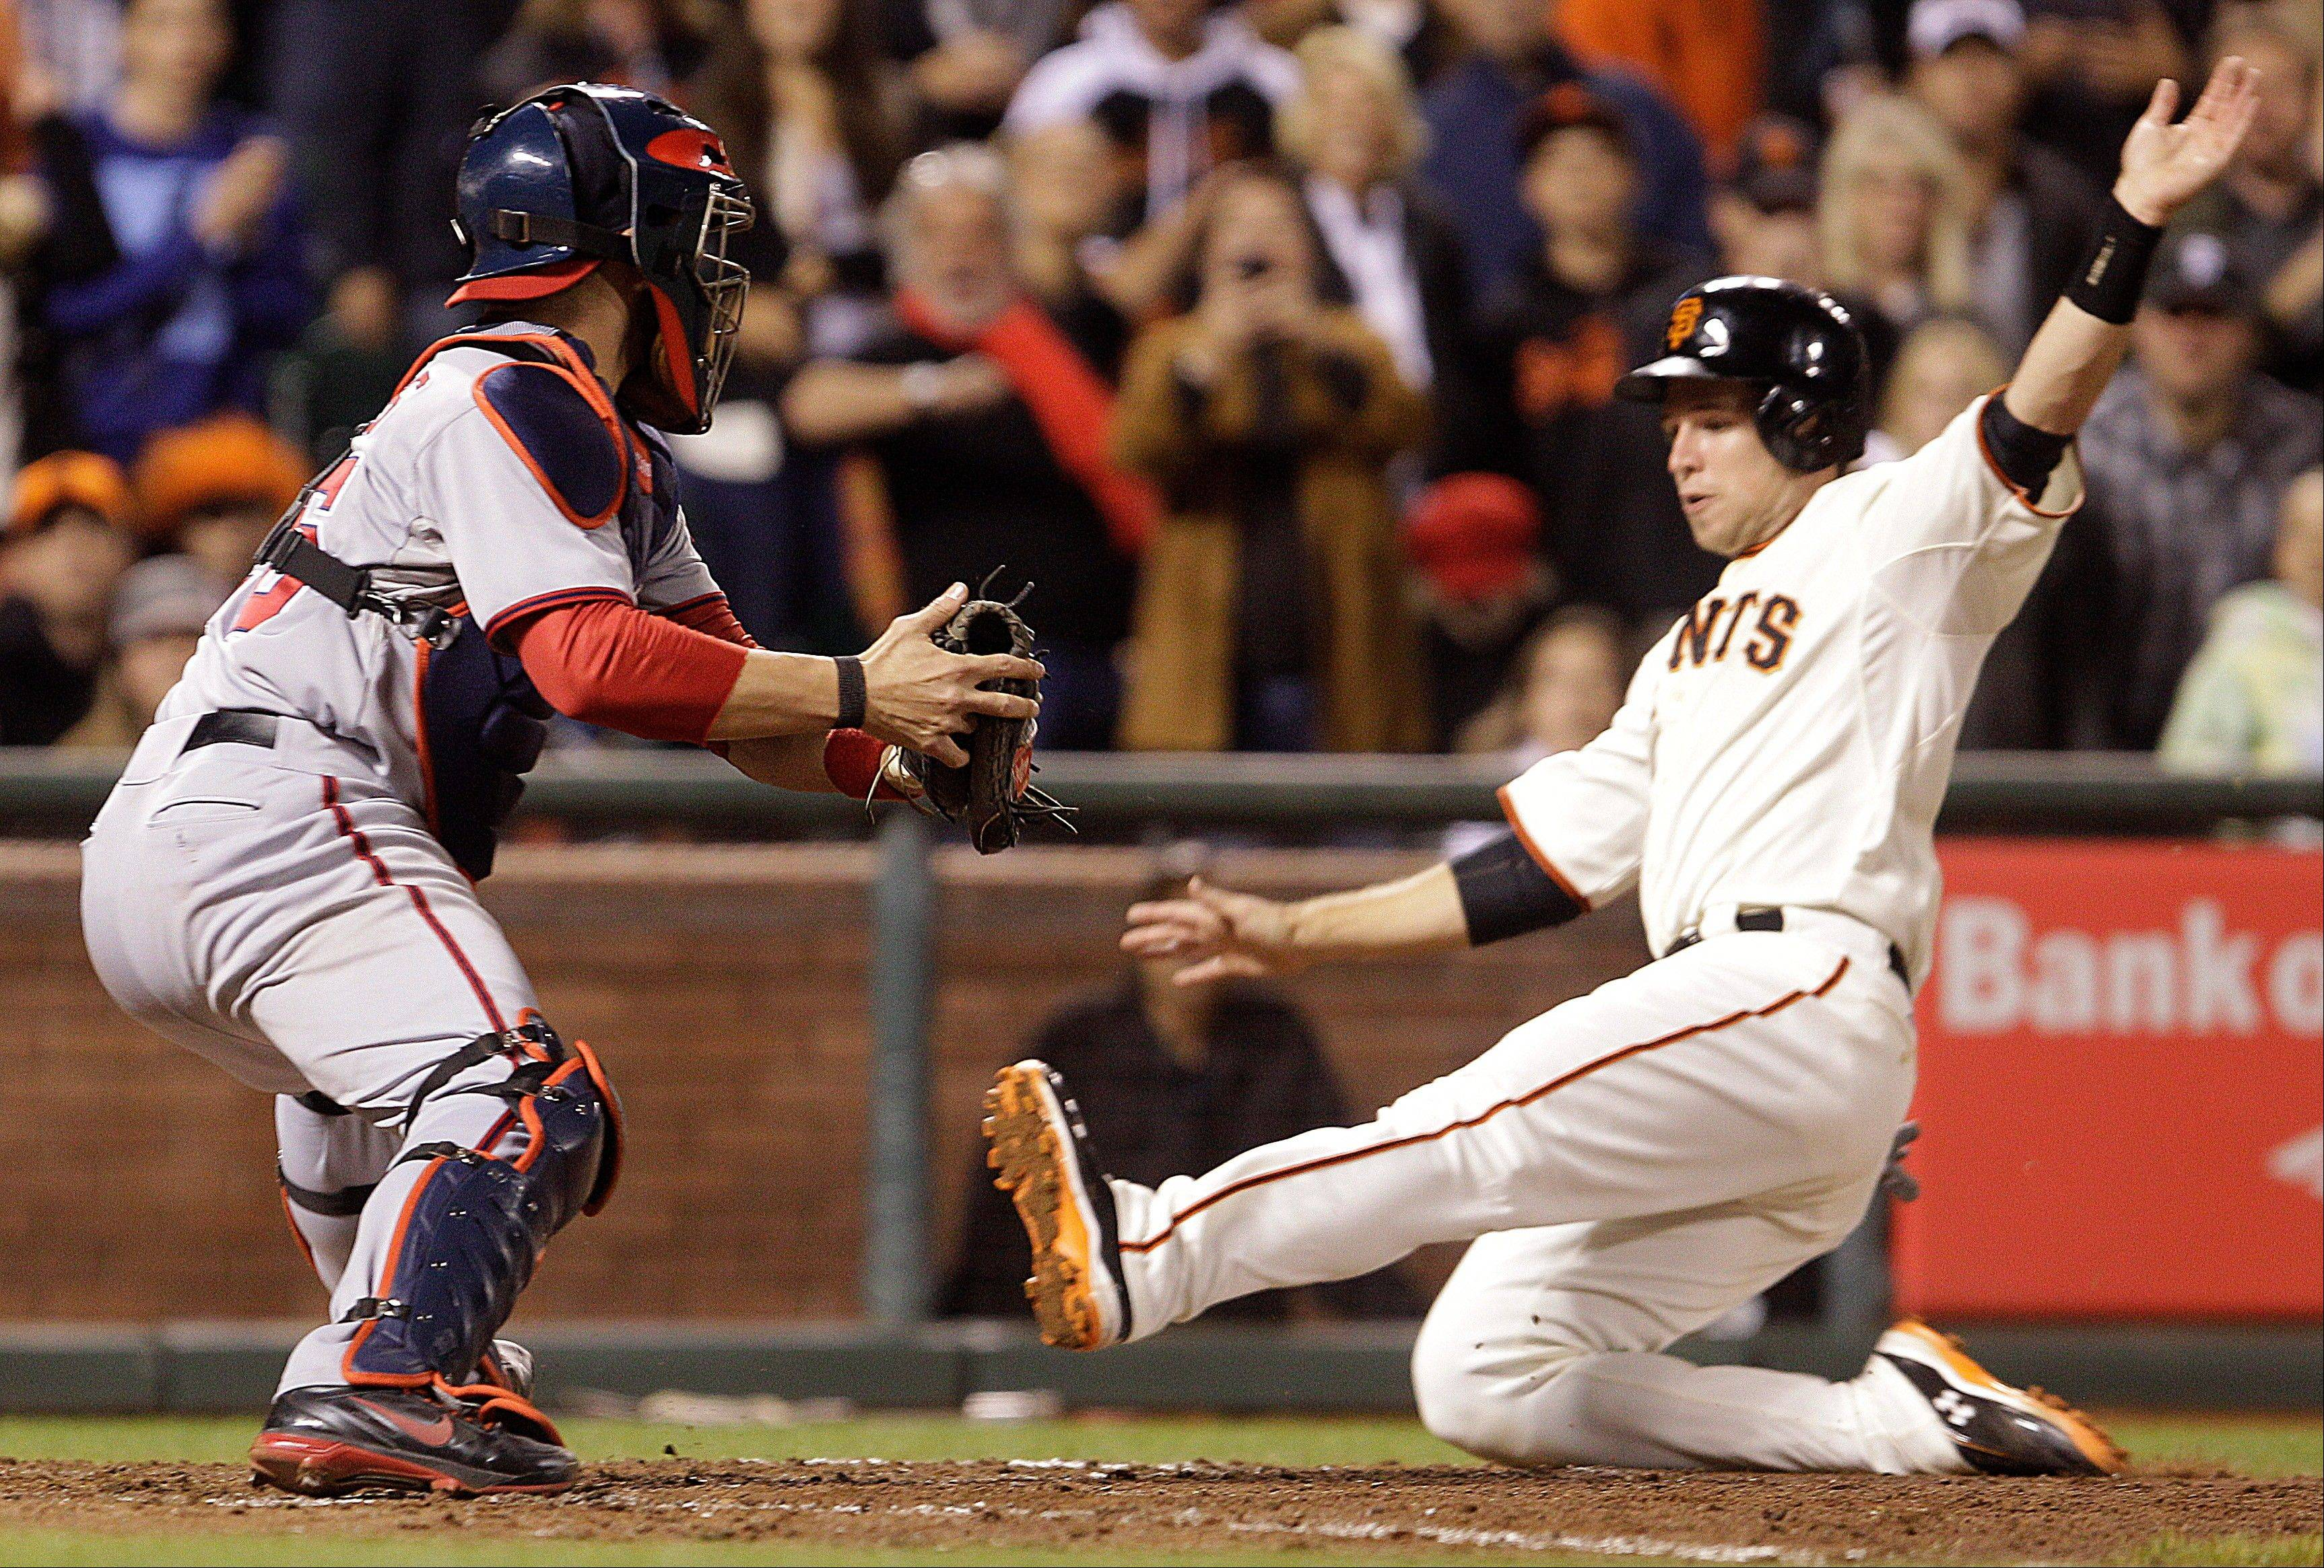 The Giants� Buster Posey slides in to score in front of Washington Nationals catcher Jesus Flores in the eighth inning Tuesday in San Francisco. Posey scored on a single by Brandon Belt.